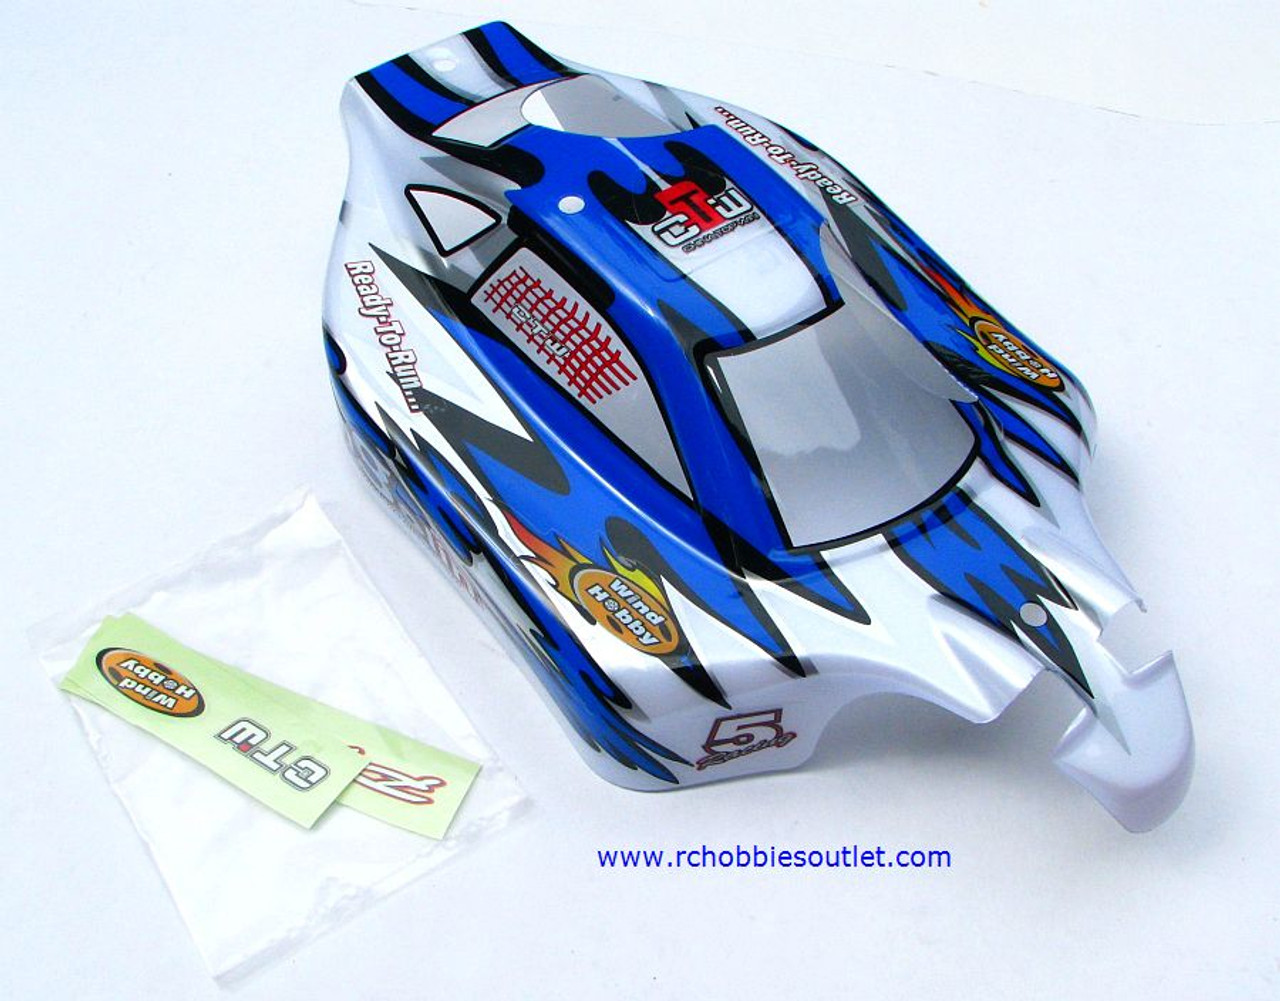 YX18812  HSP  RC CAR 1/8 SCALE BODY SHELL for RC BUGGY